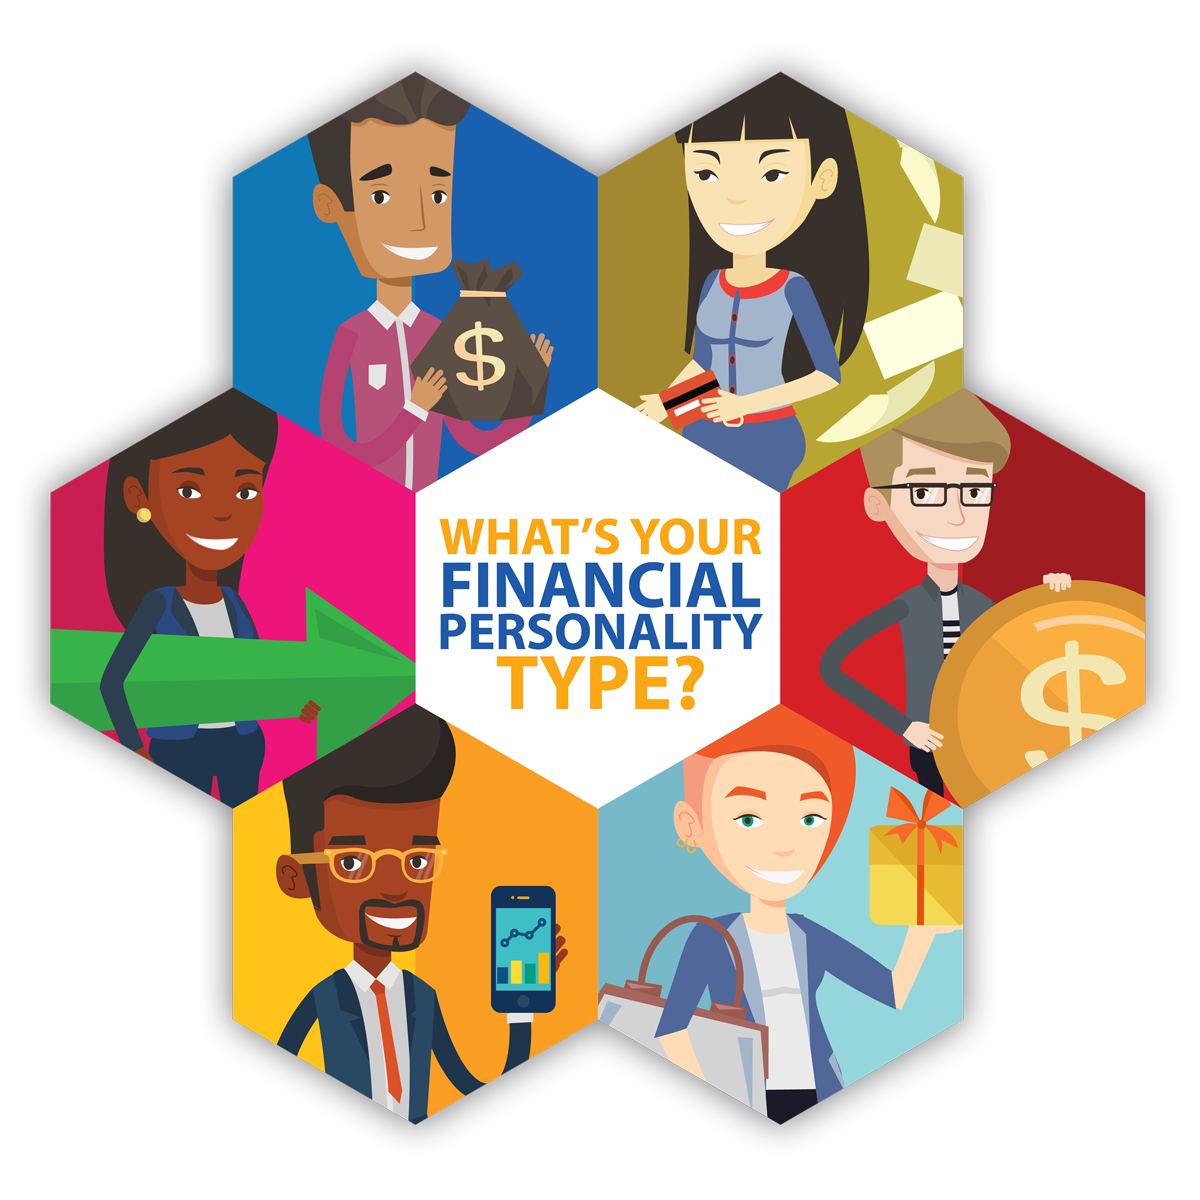 What's Your Financial Personality type?